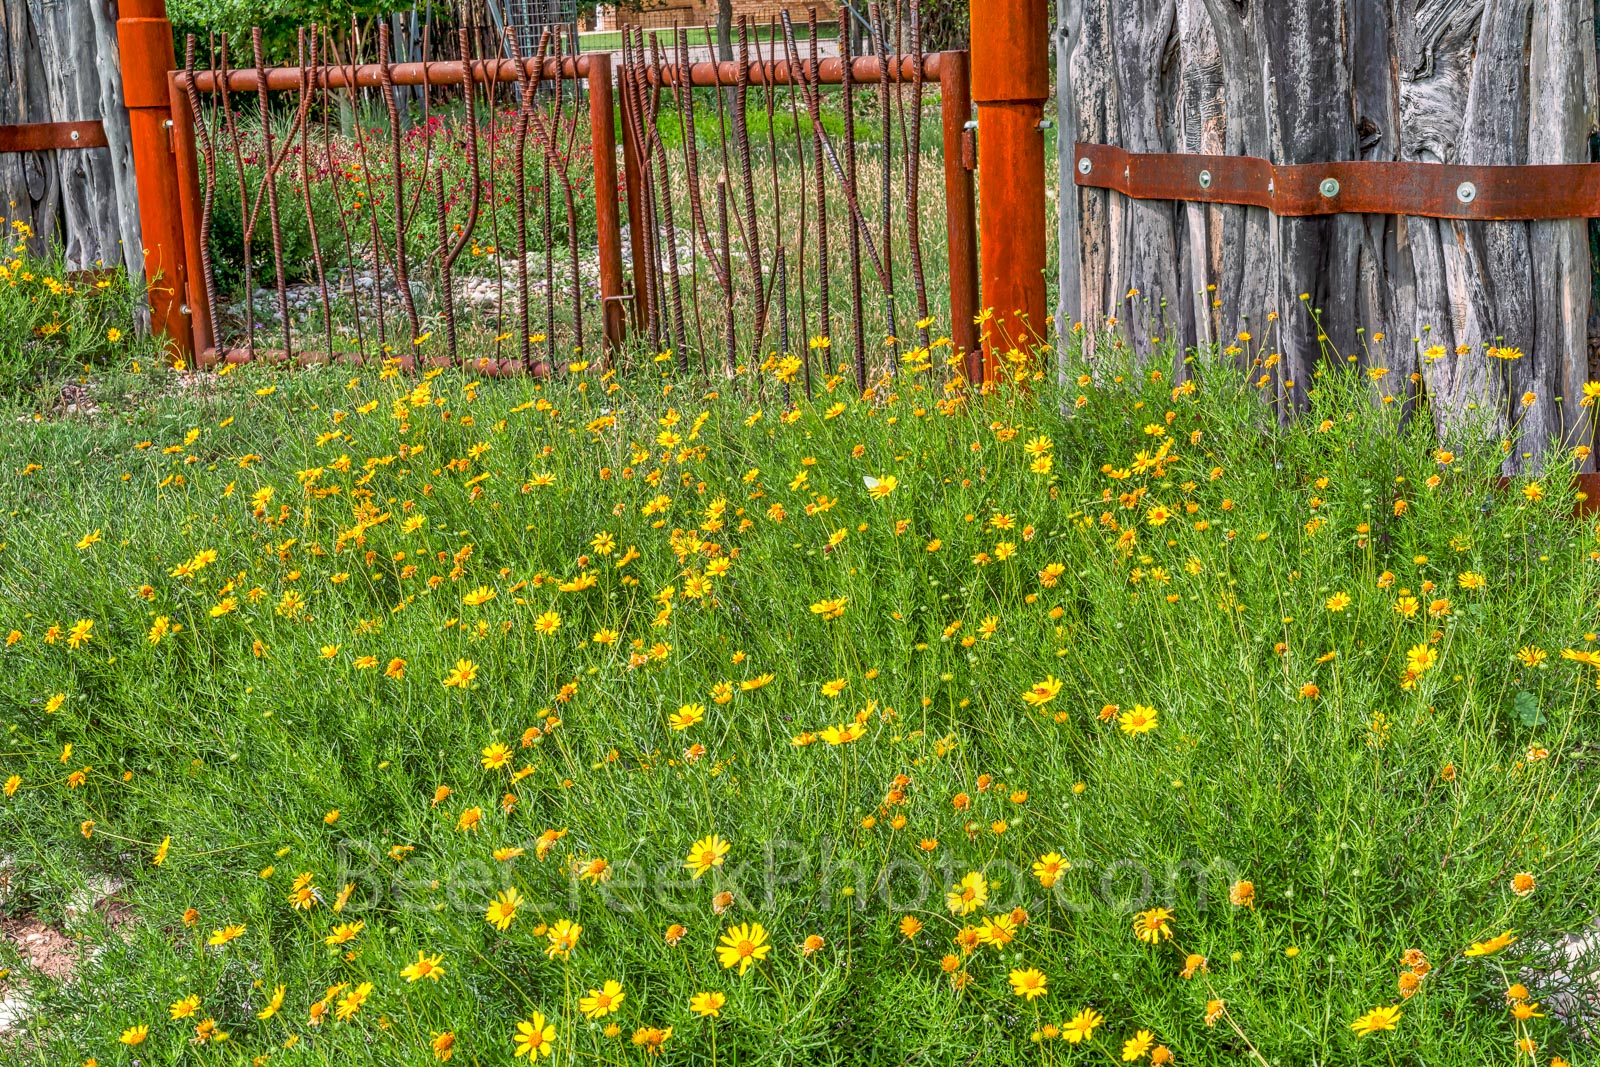 Texas Scenery, Spring, wildflowers, flowers, Texas scene, wrought iron gate, cedar fence, back roads, damiantia wildflowers, spring scenery,  yellow flowers, , photo